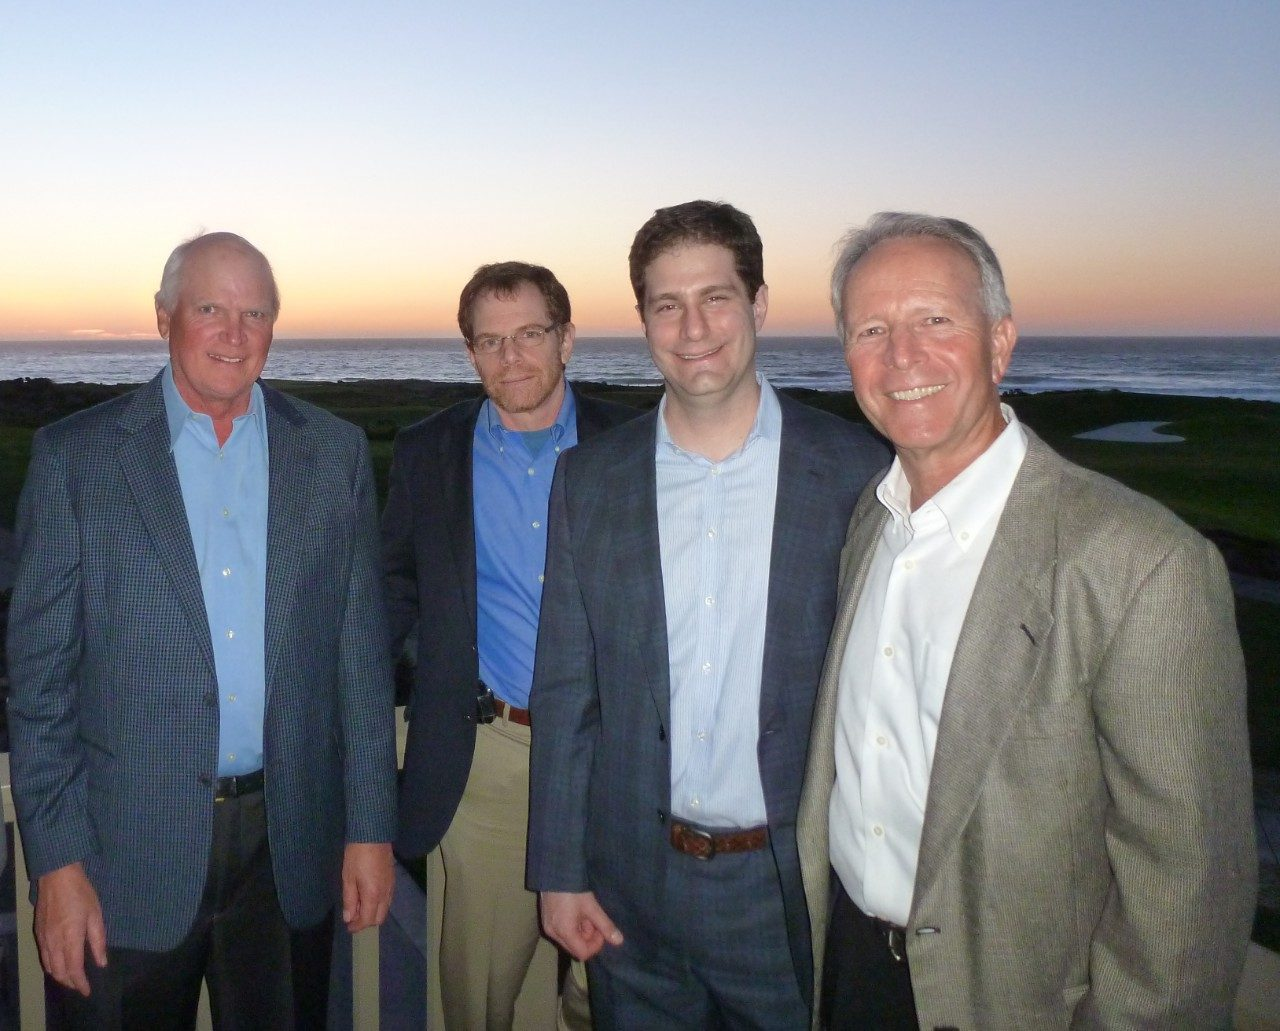 Mike Givens, Mark Gilbert, M.D., Nicholas Levine, M.D., and Laird Small, Pebble Beach Golf Academy director